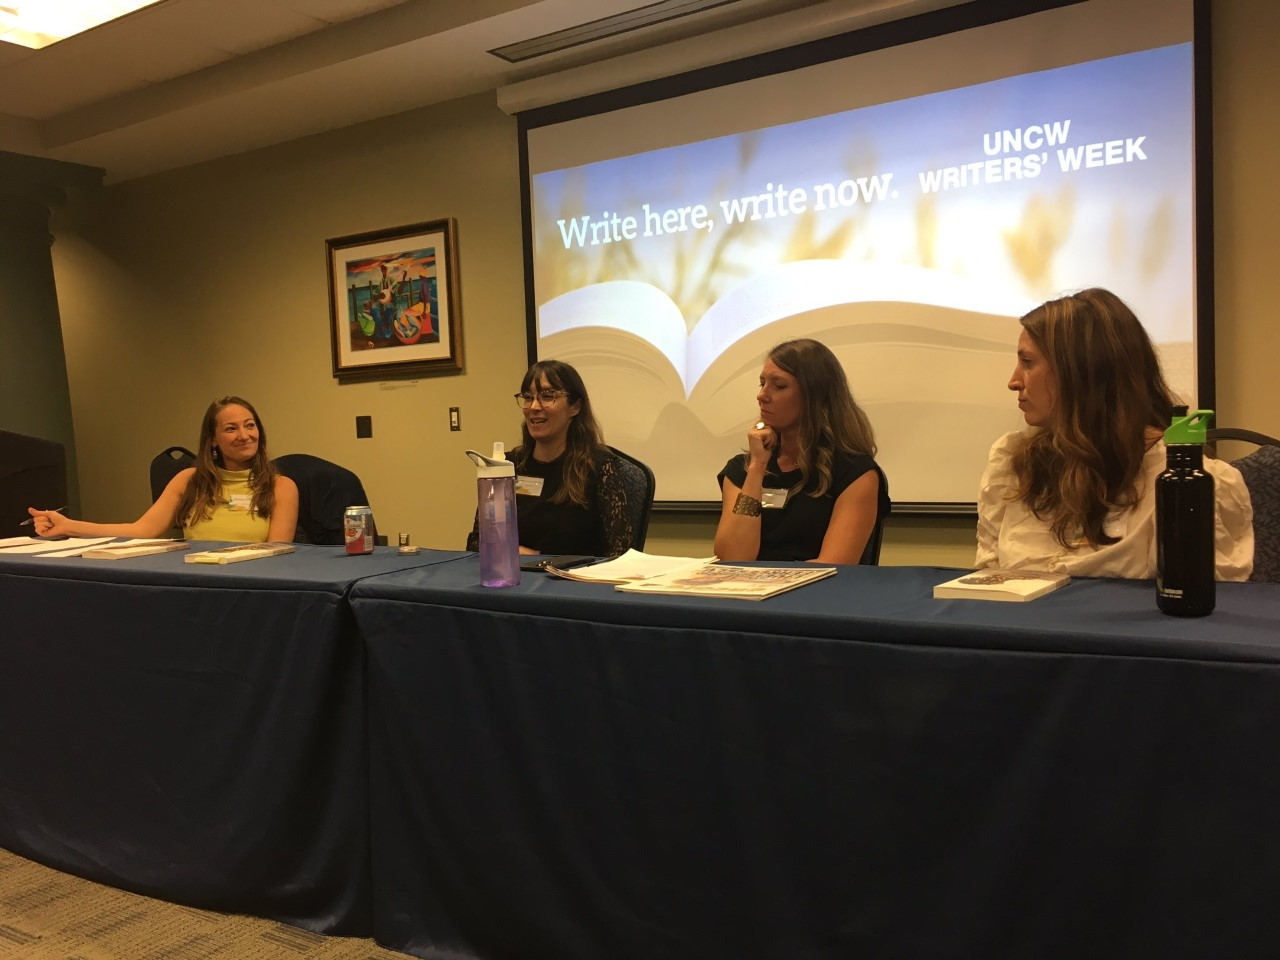 Writer's Week Publishing Panel participants, from left to right: Morgan Davis, Cameron Dezen Hammon, Emily Smith, and Beth Staples.